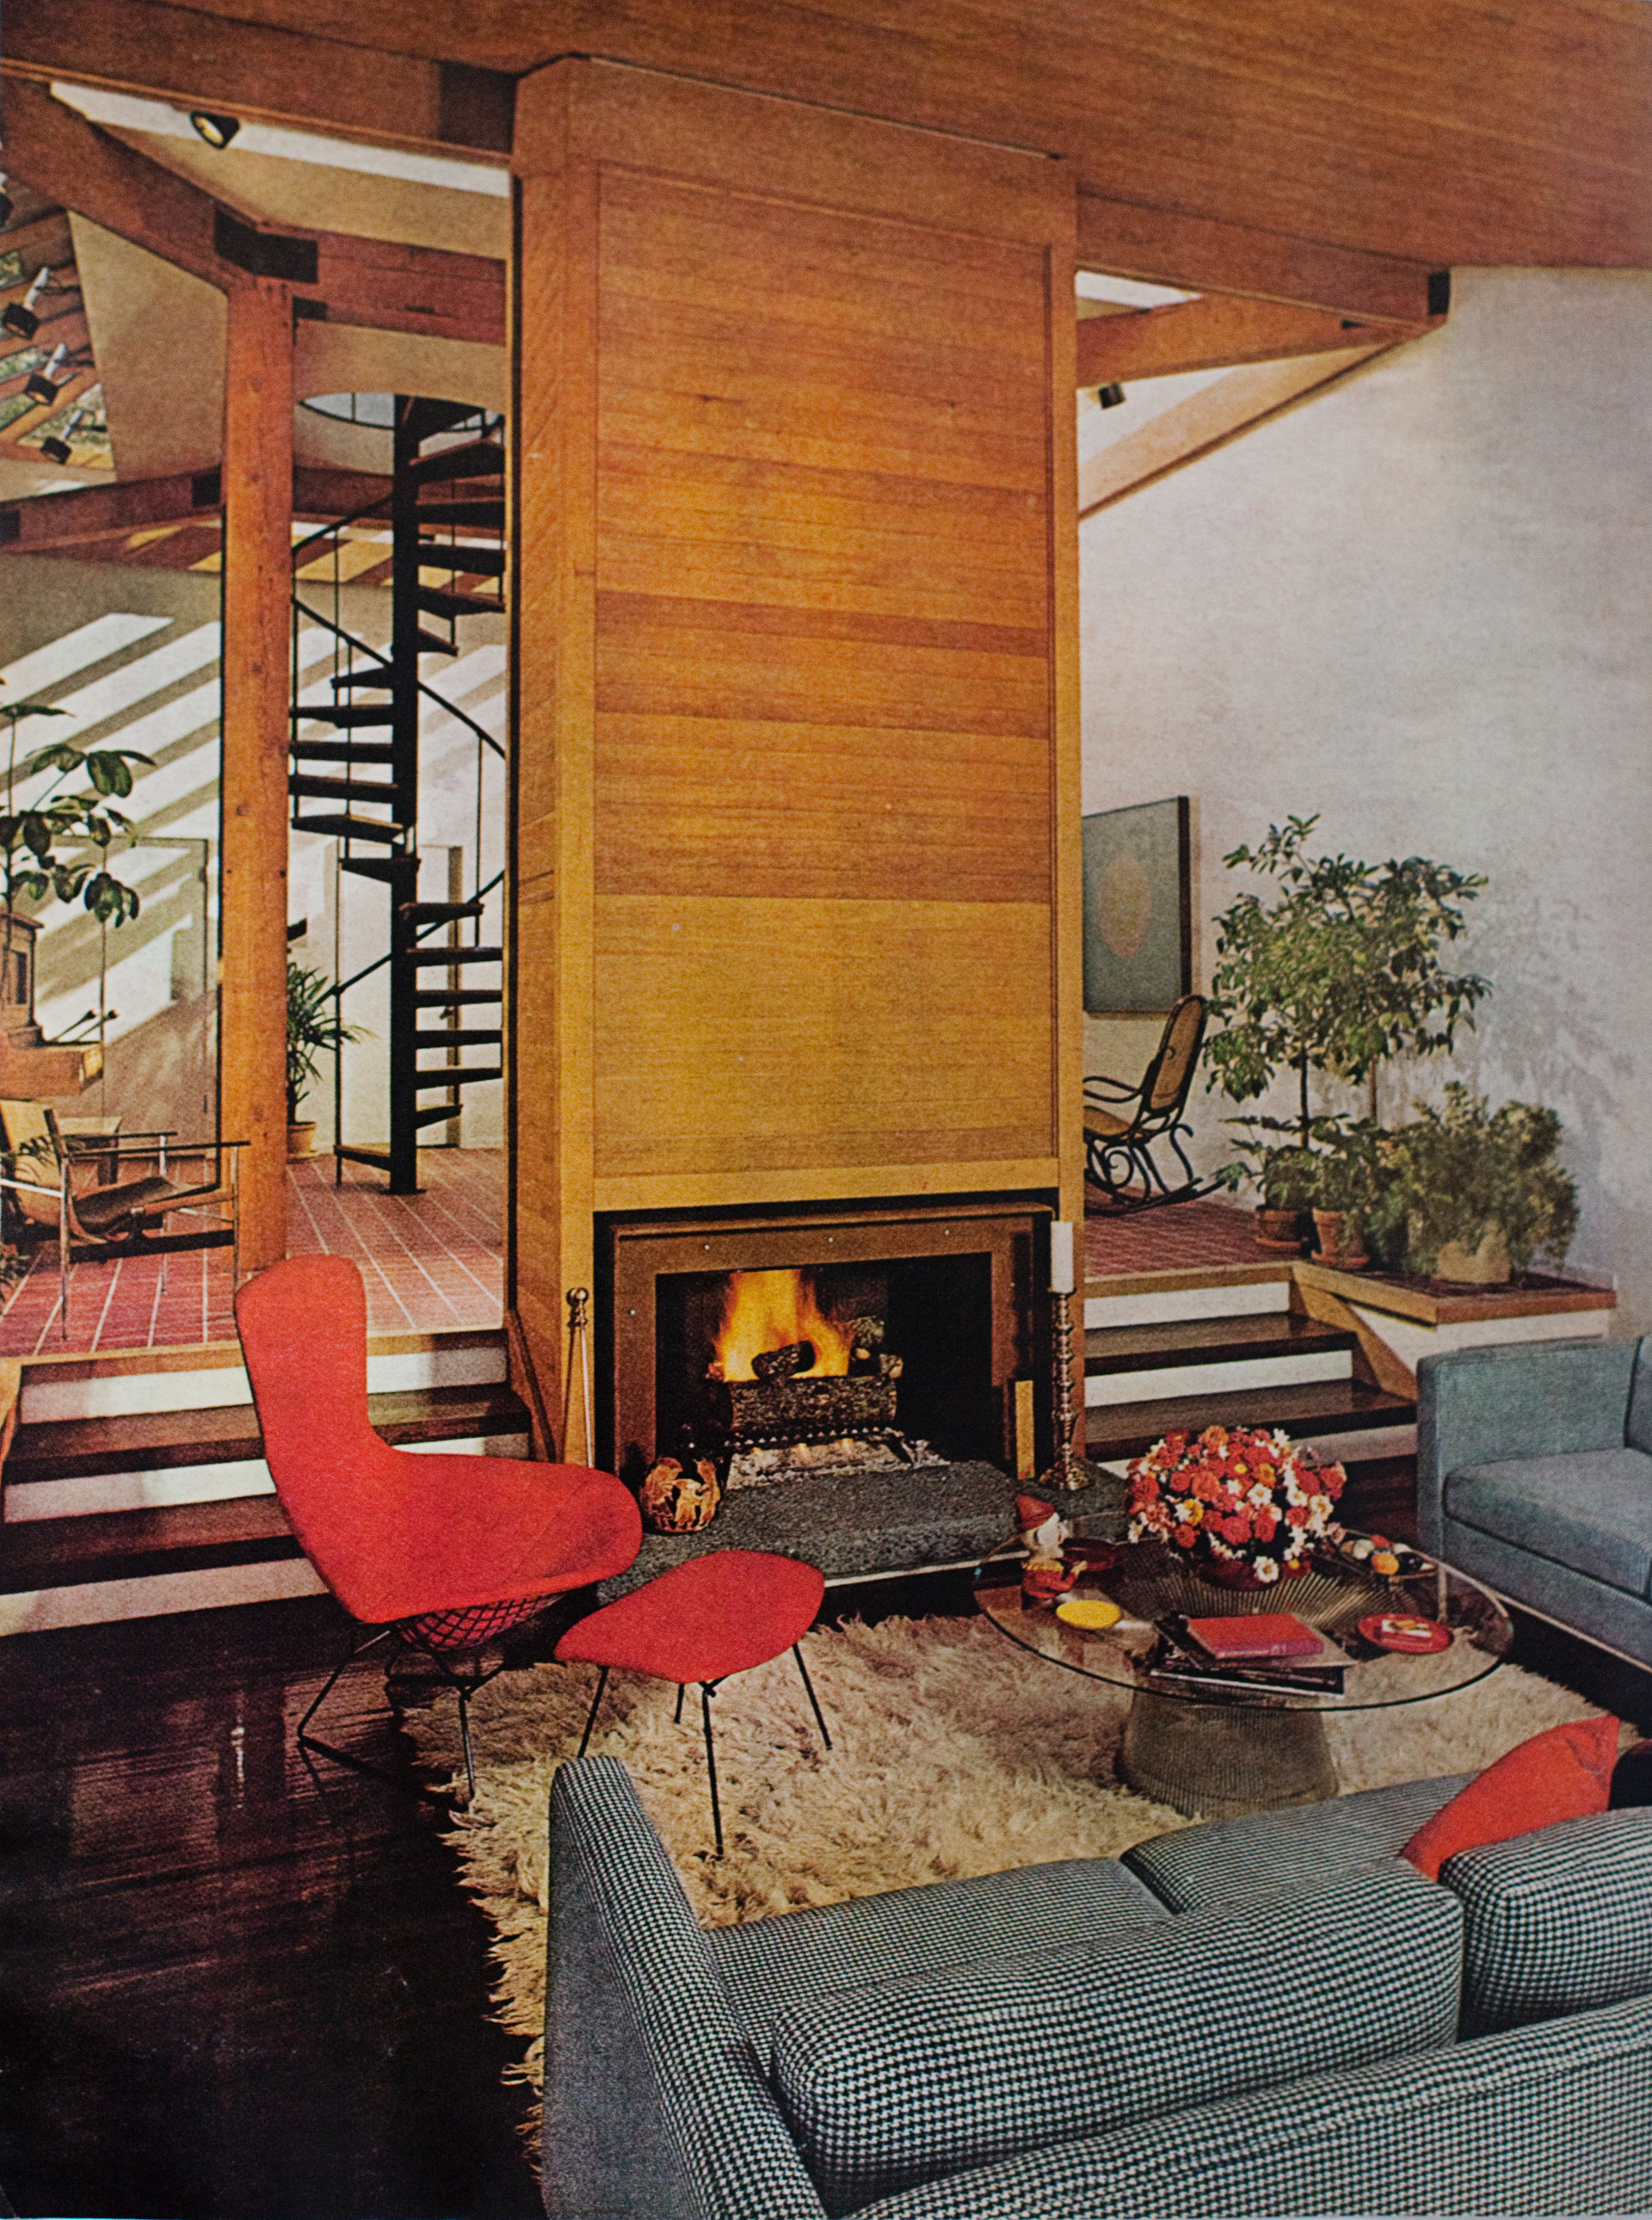 1970s sunken living room